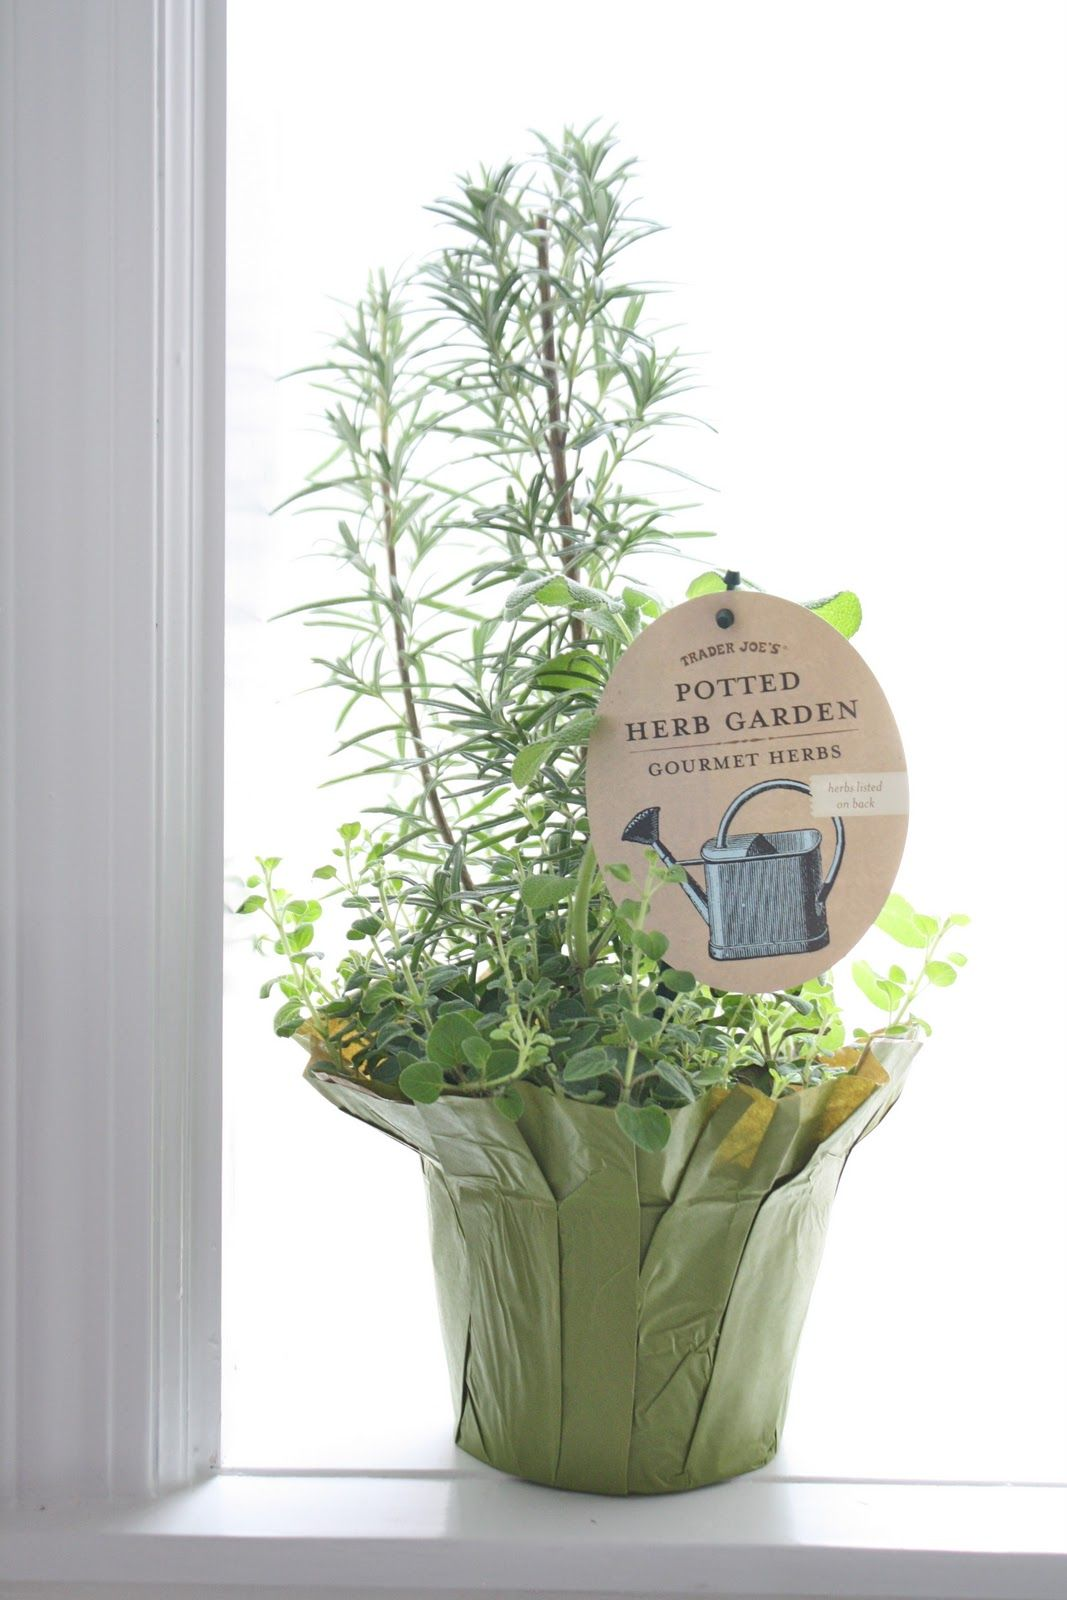 Trader Joe's Potted Herb Garden I need this! The one at